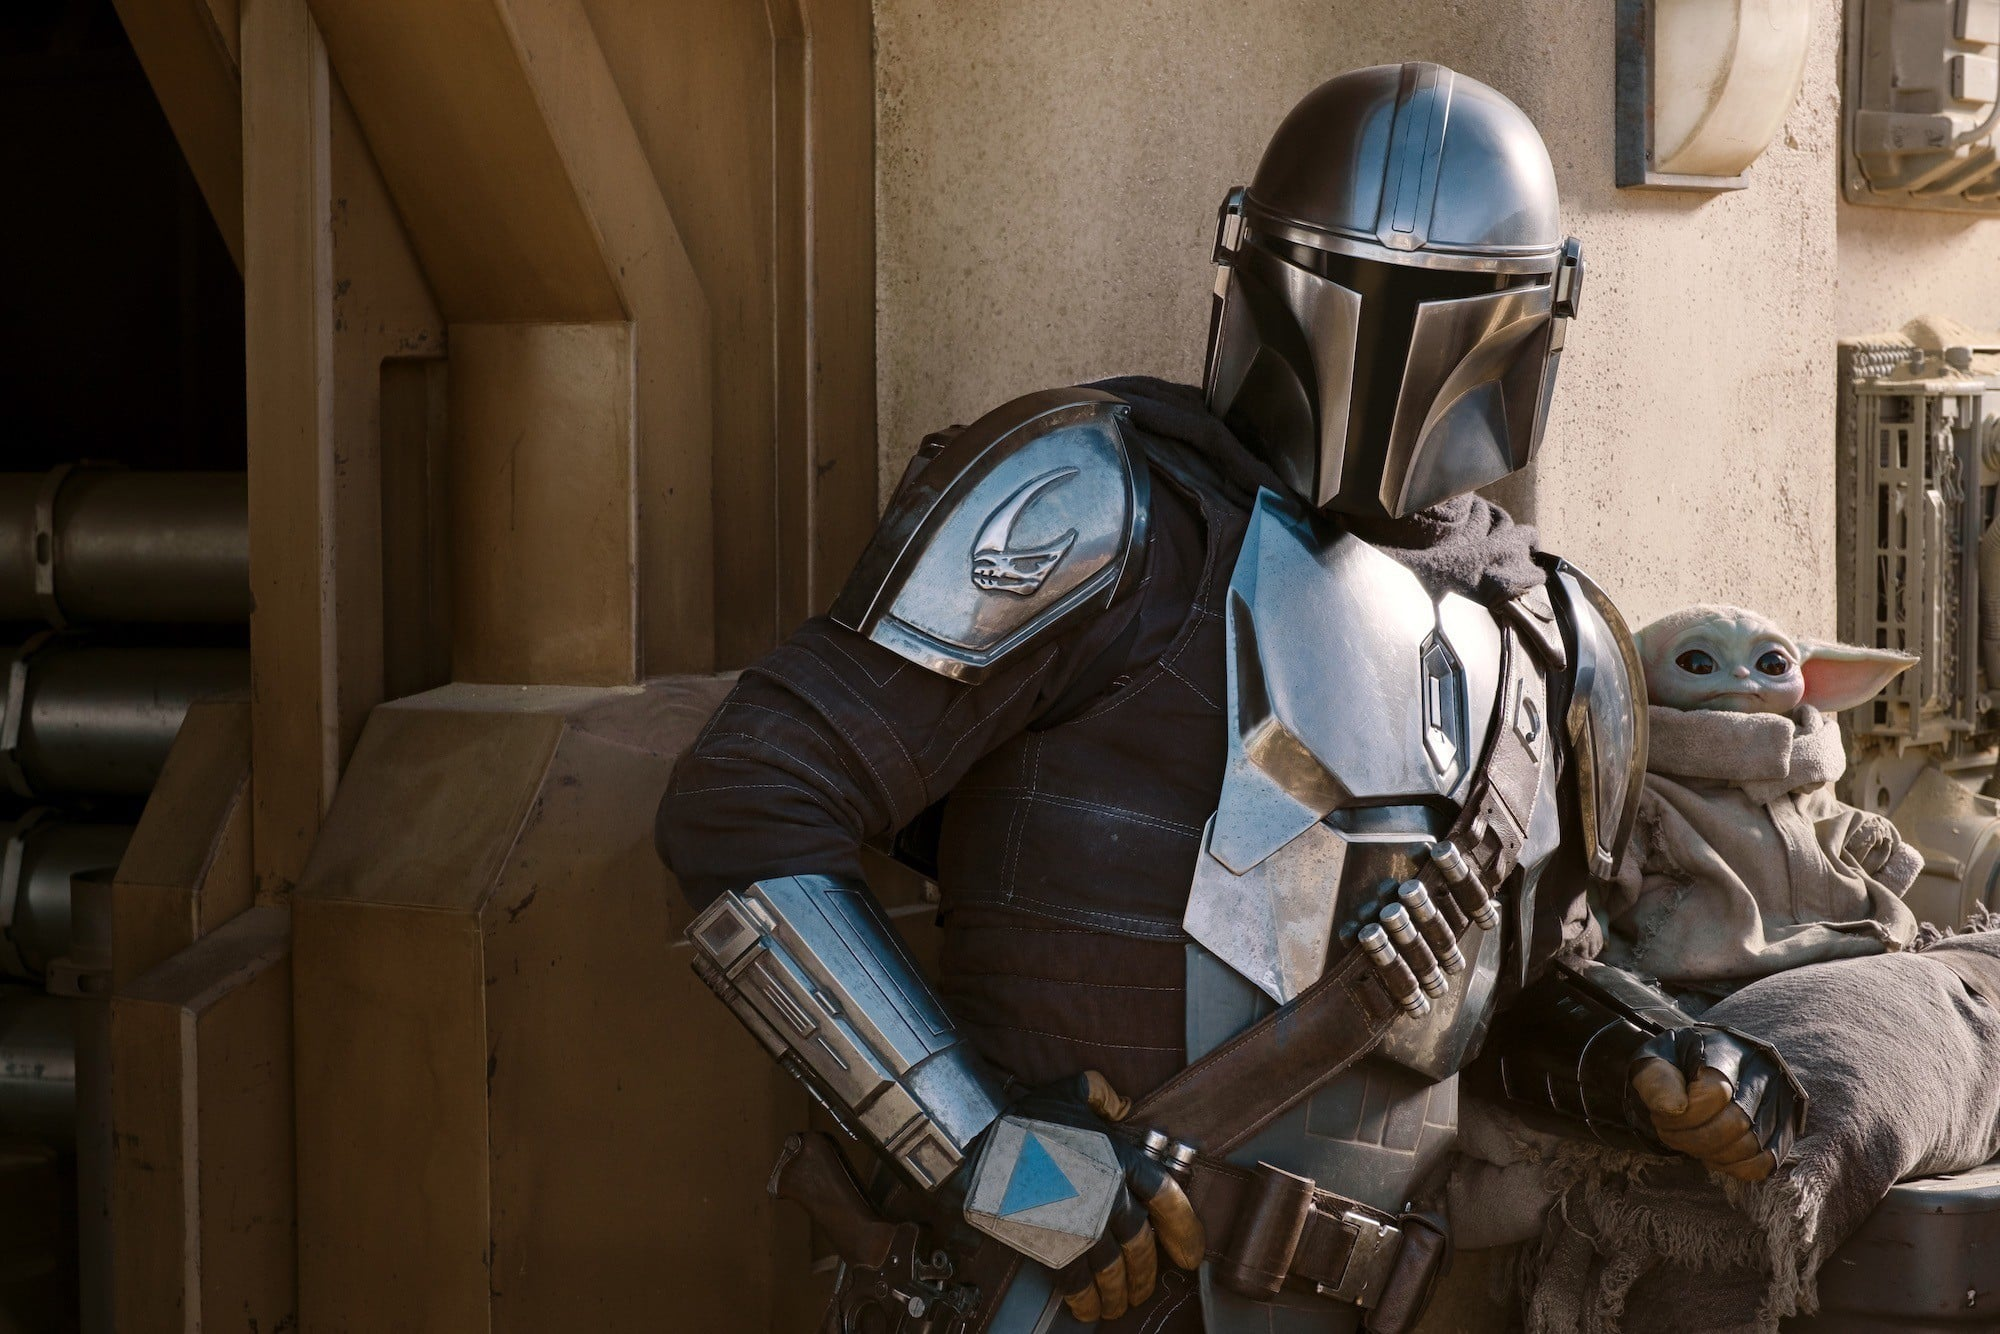 THE MANDALORIAN, from left: Pedro Pascal (as The Mandalorian), The Child (aka Baby Yoda), (Season 2, premiered Oct. 30, 2020). photo: Disney+/Lucasfilm / Courtesy Everett Collection